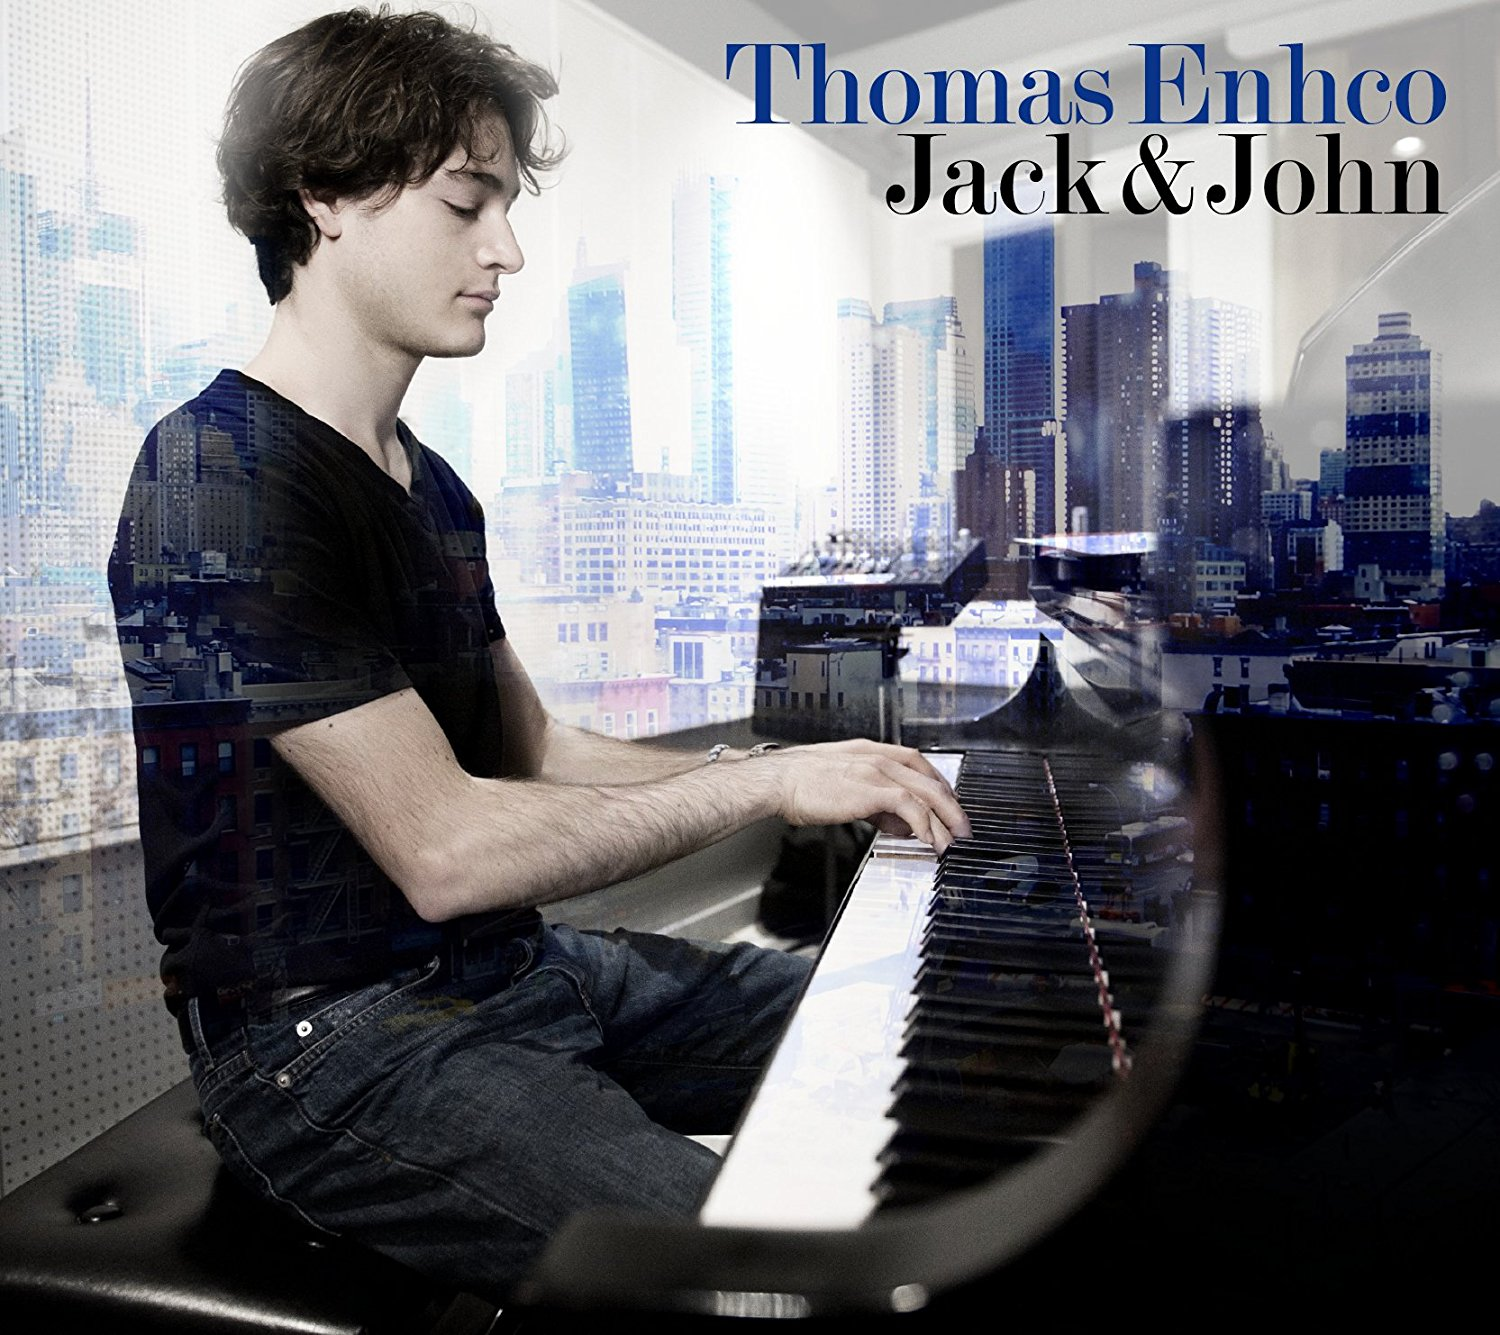 Thomas Enhco with Jack Dejohnette and John Patitucci -  Jack & John  (2012)